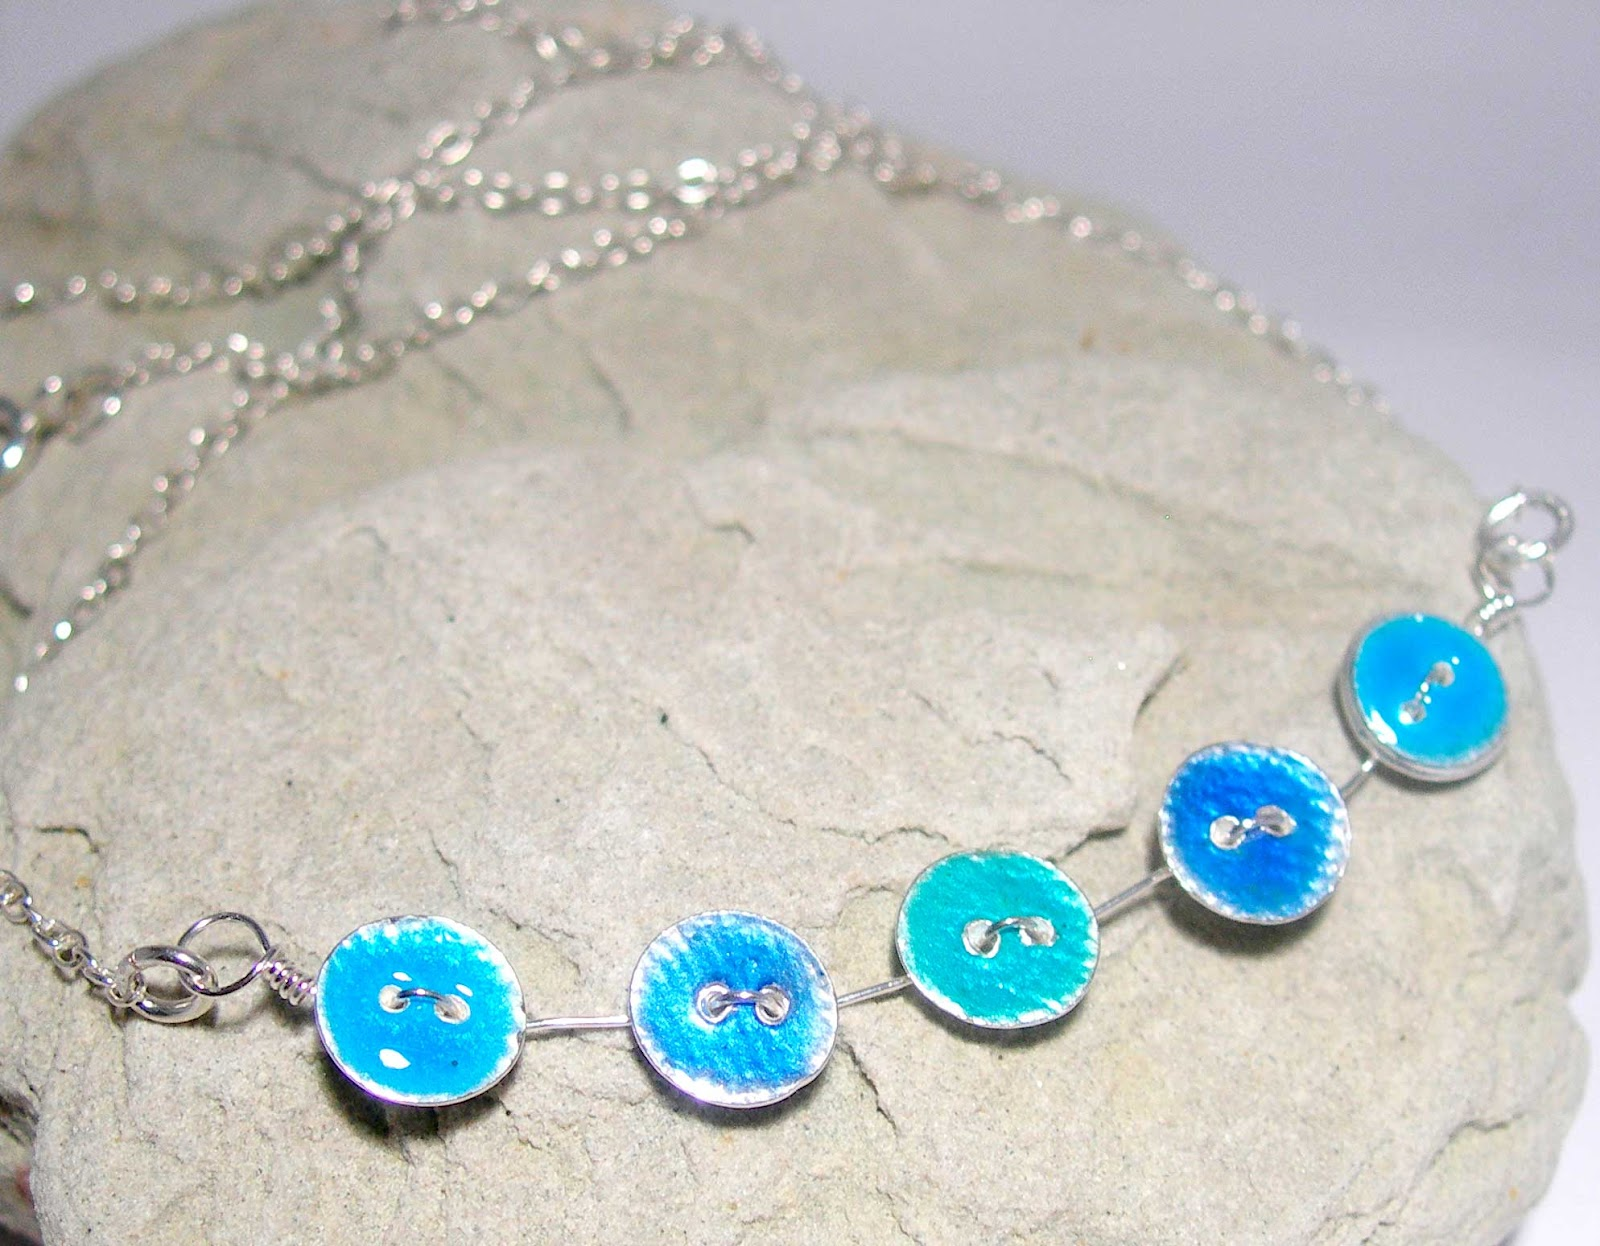 Hues of Blue Enamelled Silver Button Necklace